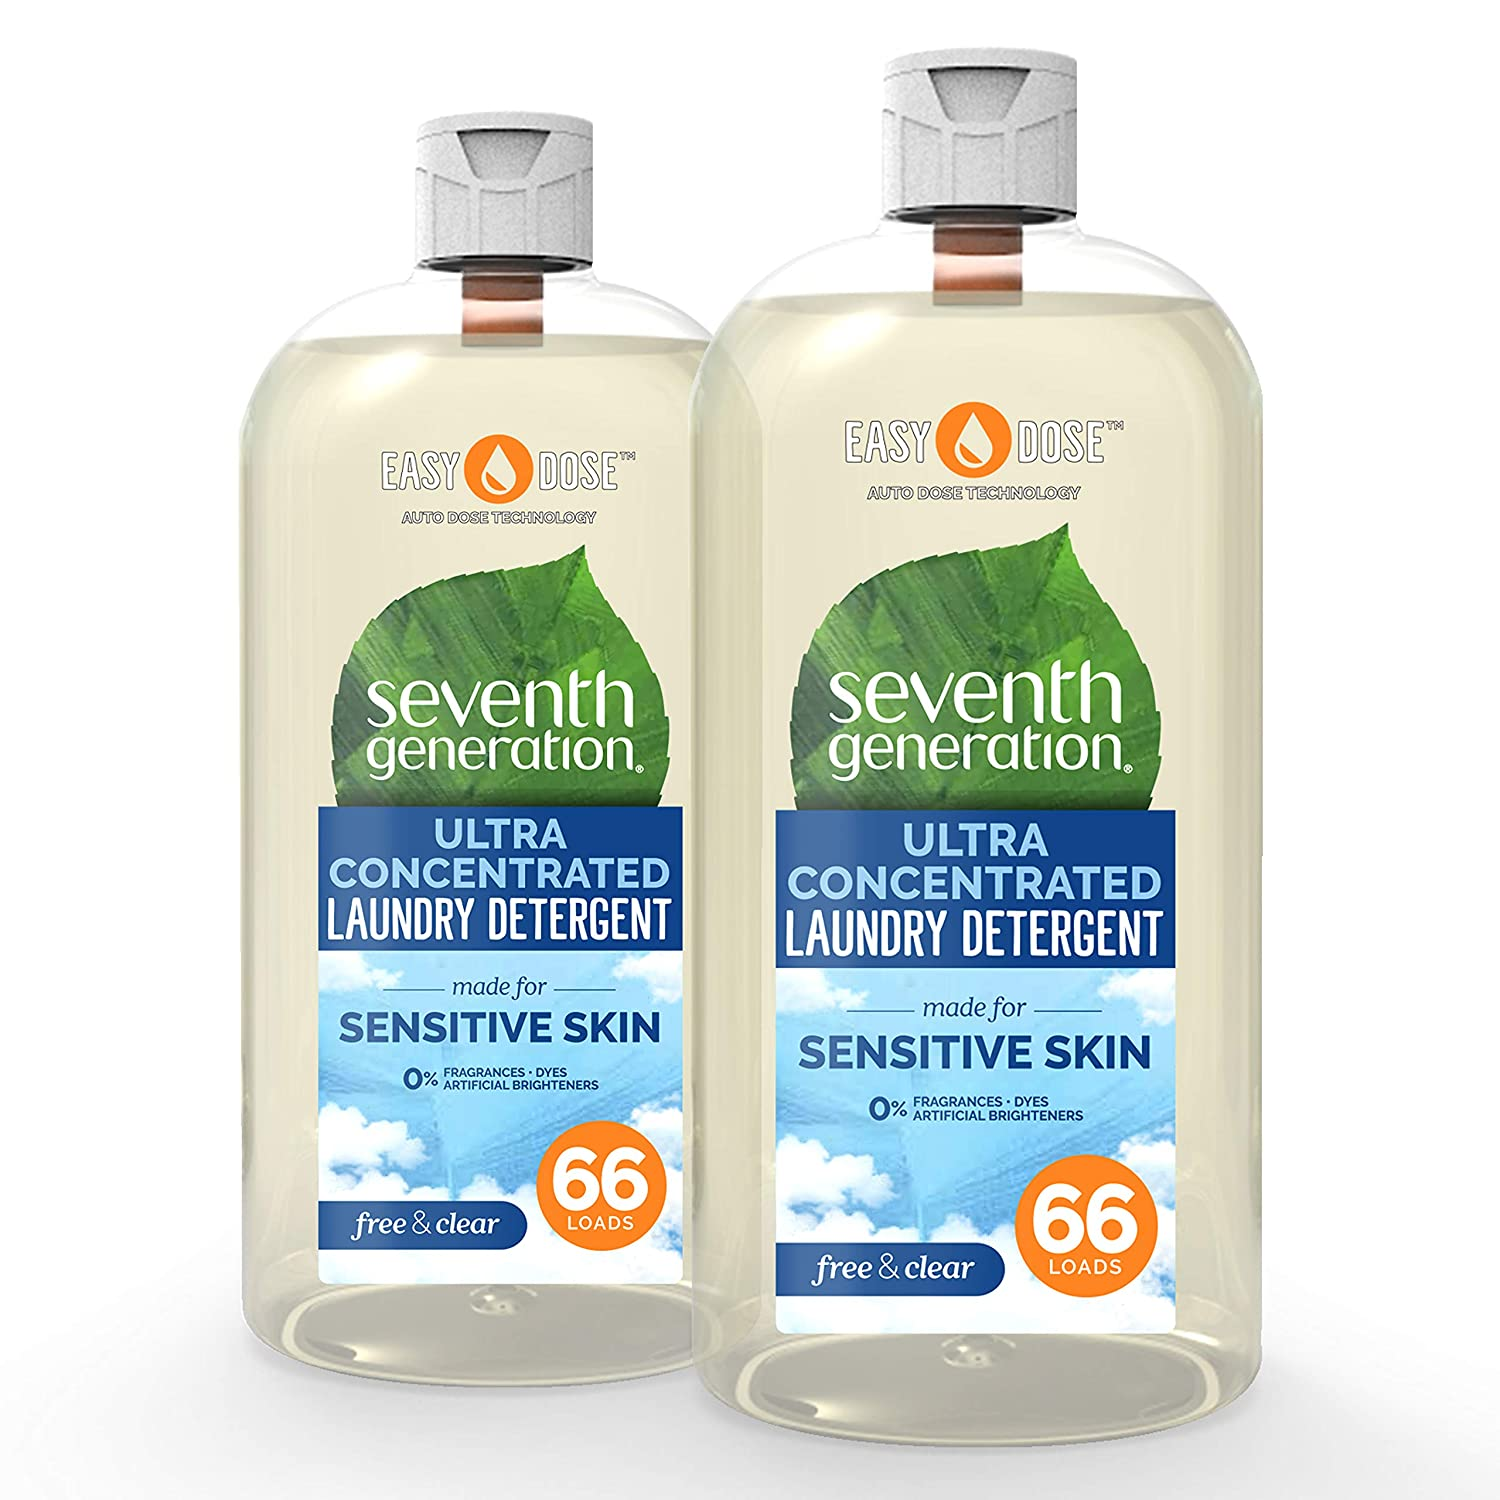 Seventh Generation Laundry Detergent Ultra Concentrated EasyDose, Free & Clear, 23 oz, 2 Pack (132 Loads)